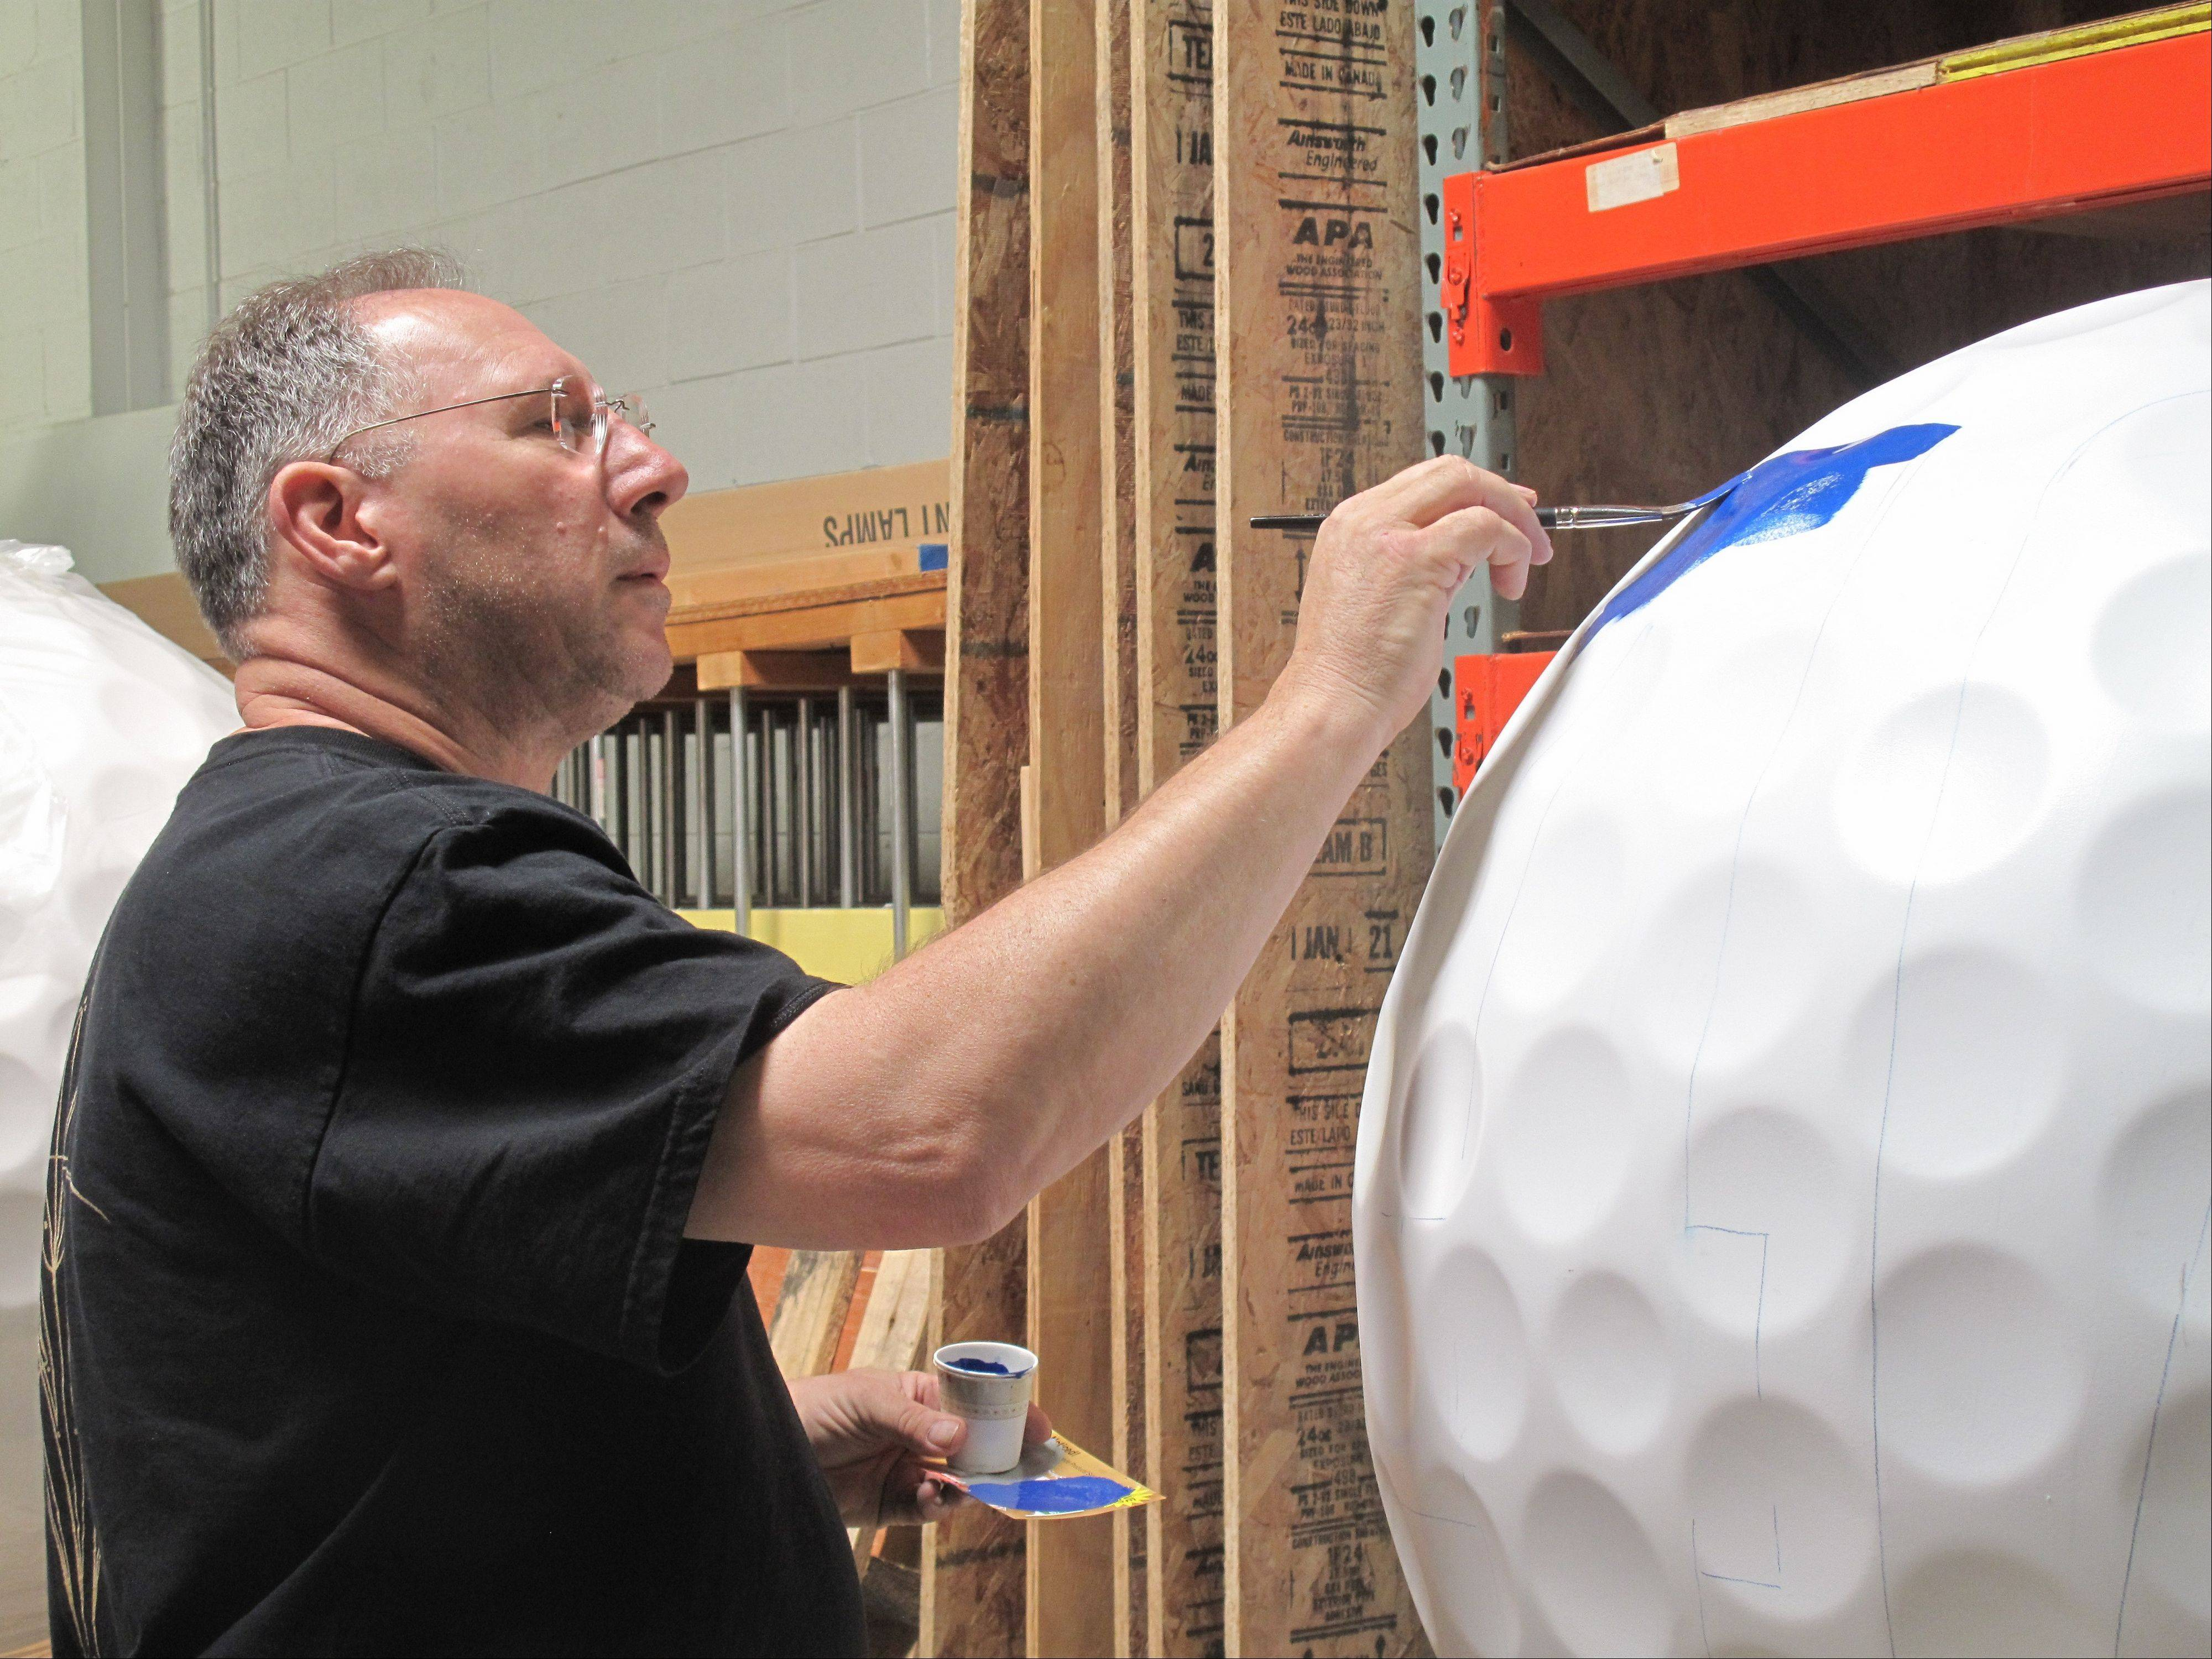 Bob Behounek of Chicago BrushMasters, a group of artisan sign painters that raises money for Ronald McDonald House Charities, begins painting a giant golf ball to be used in an art exhibit coinciding with the September arrival of the Ryder Cup international golf tournament to Medinah Country Club.